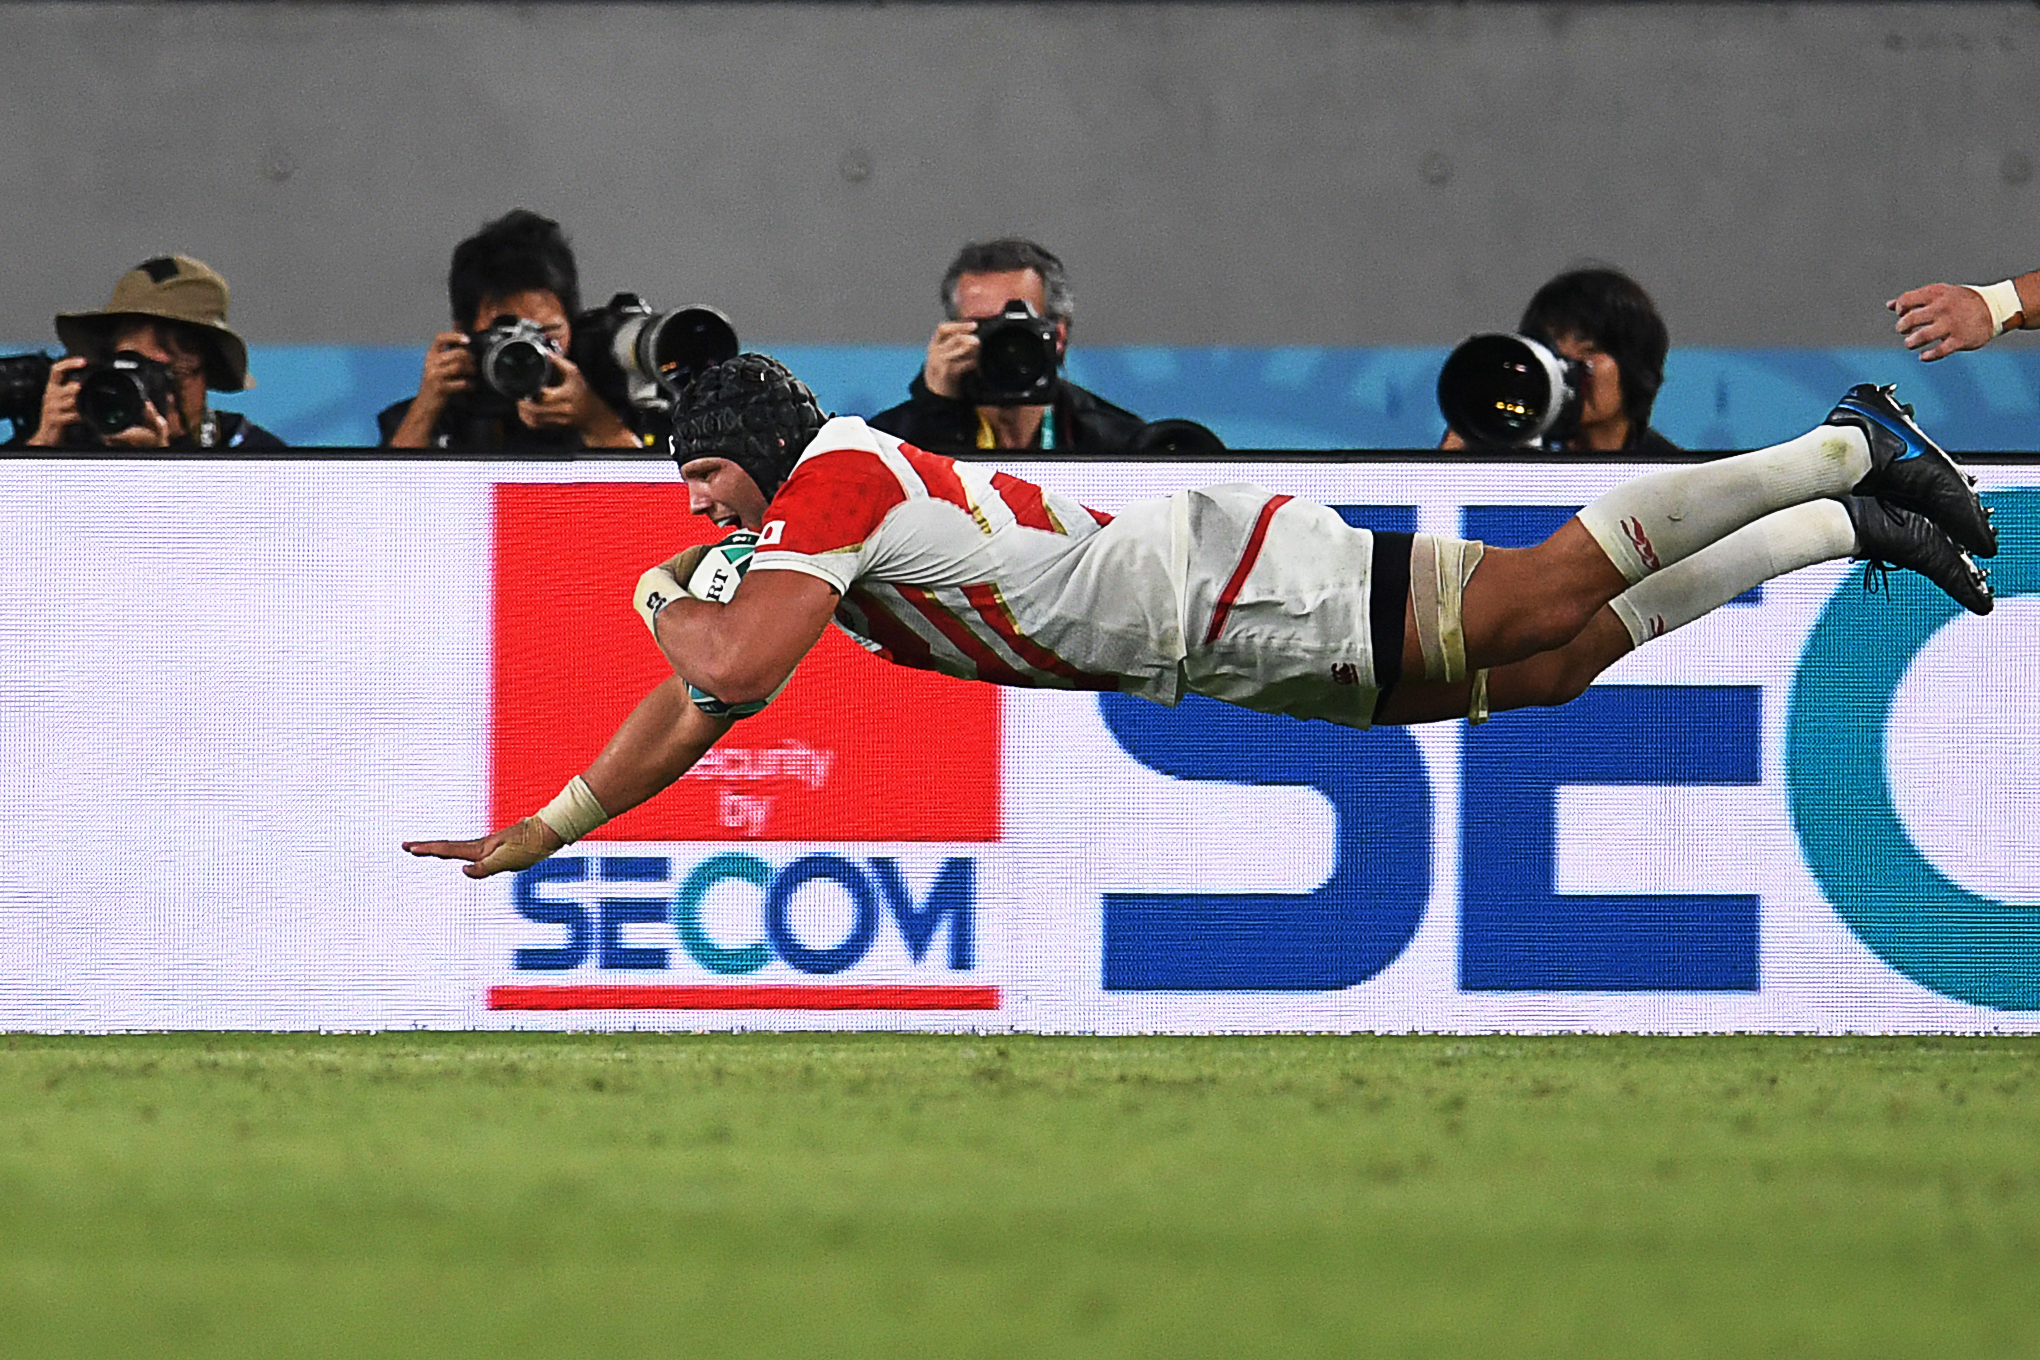 Pieter Labuschagne grabs his side's third try.